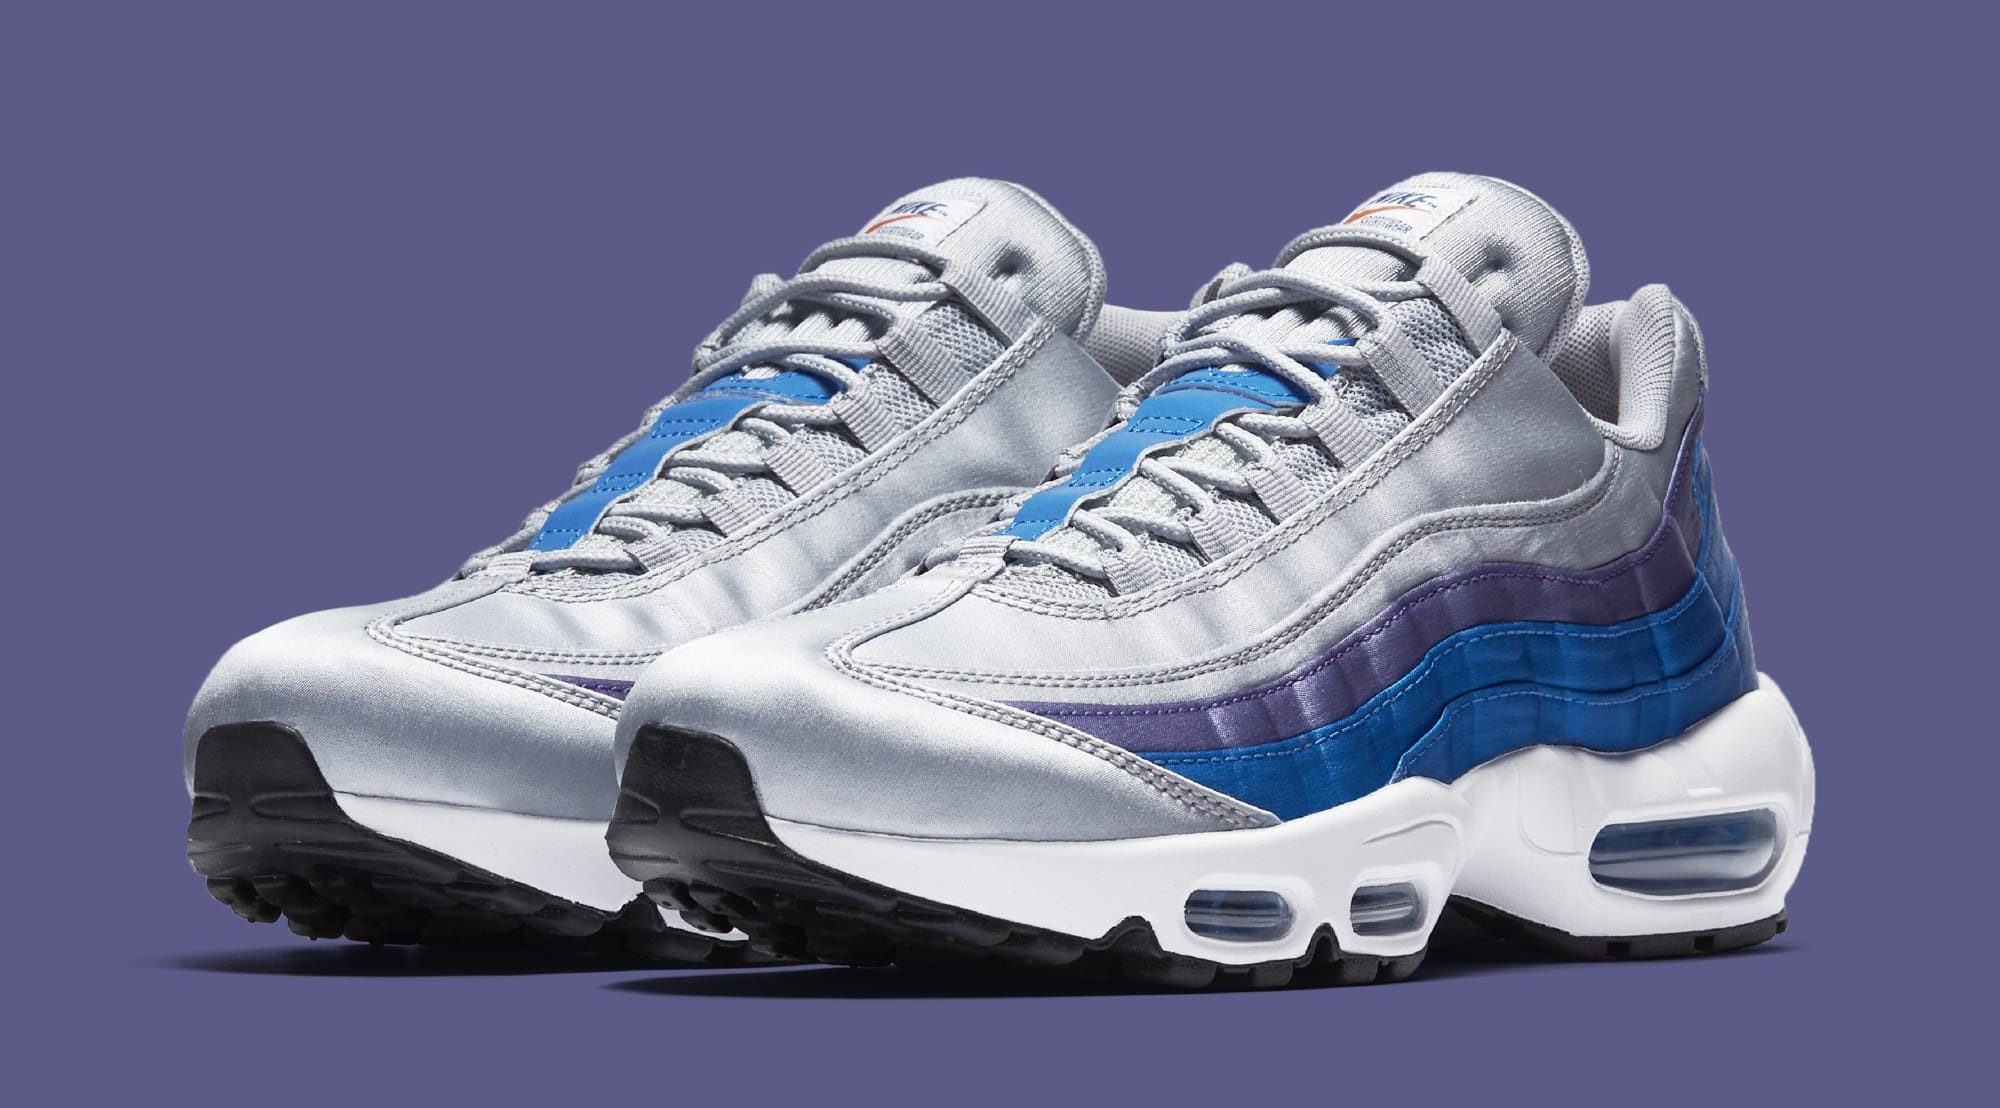 newest collection 366d0 ce7a2 ... coupon code for nike sportswear air max 95 trainers wolf grey blue  purple slate mynuqxdy 573a5